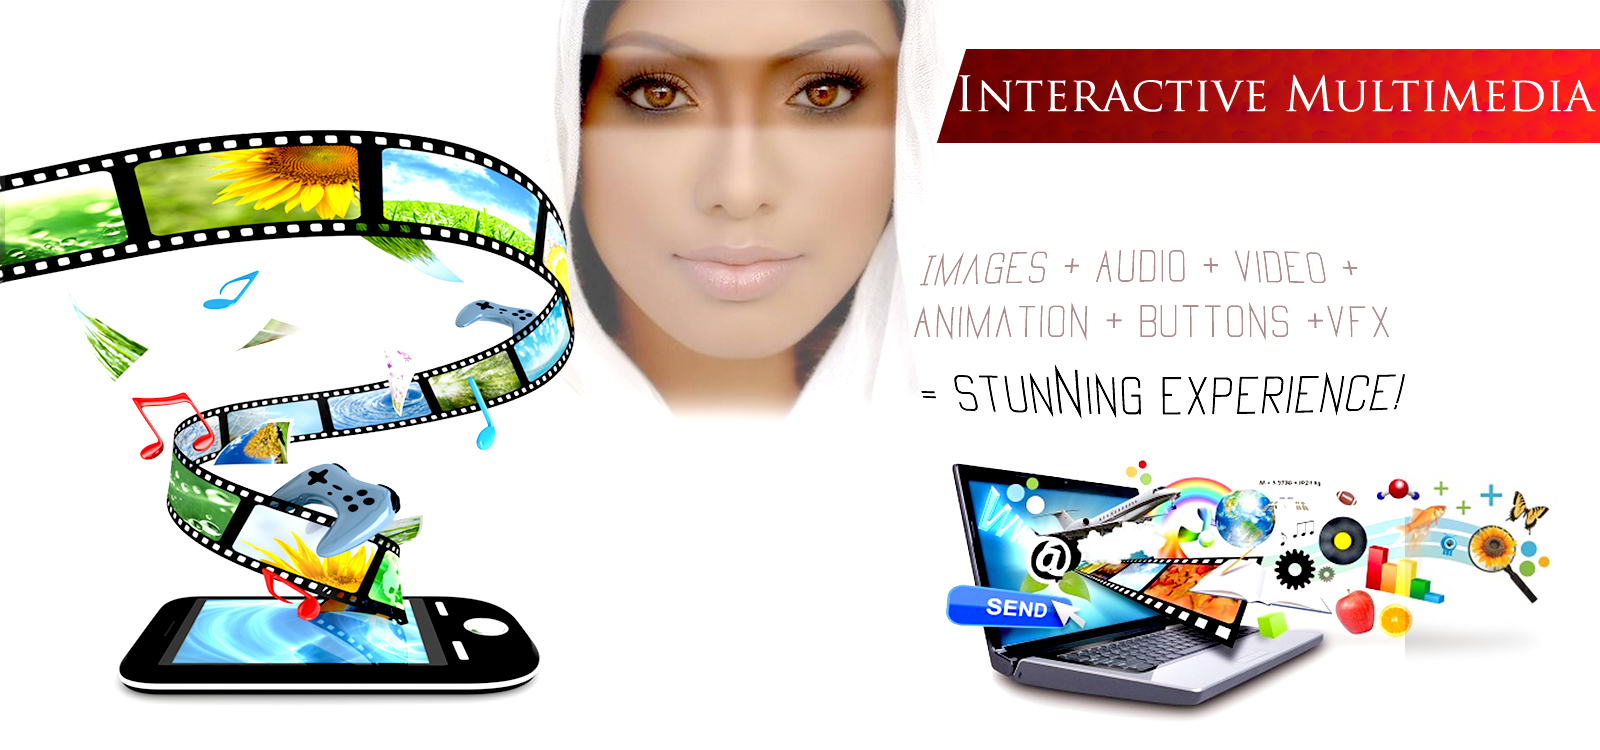 ezee Interactive Multimedia